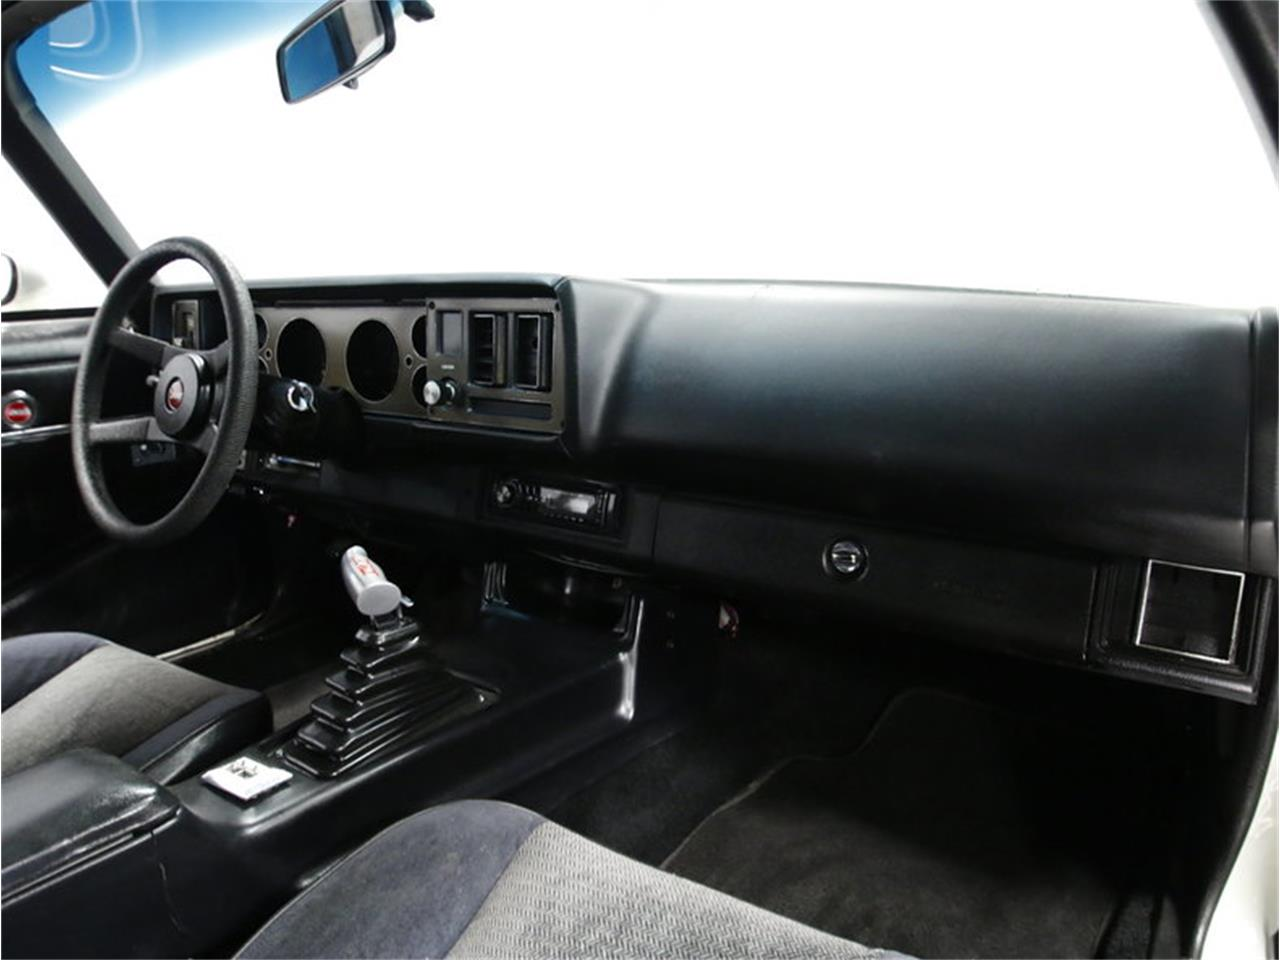 Large Picture of '78 Camaro Z28 located in North Carolina - $16,995.00 Offered by Streetside Classics - Charlotte - L5M0